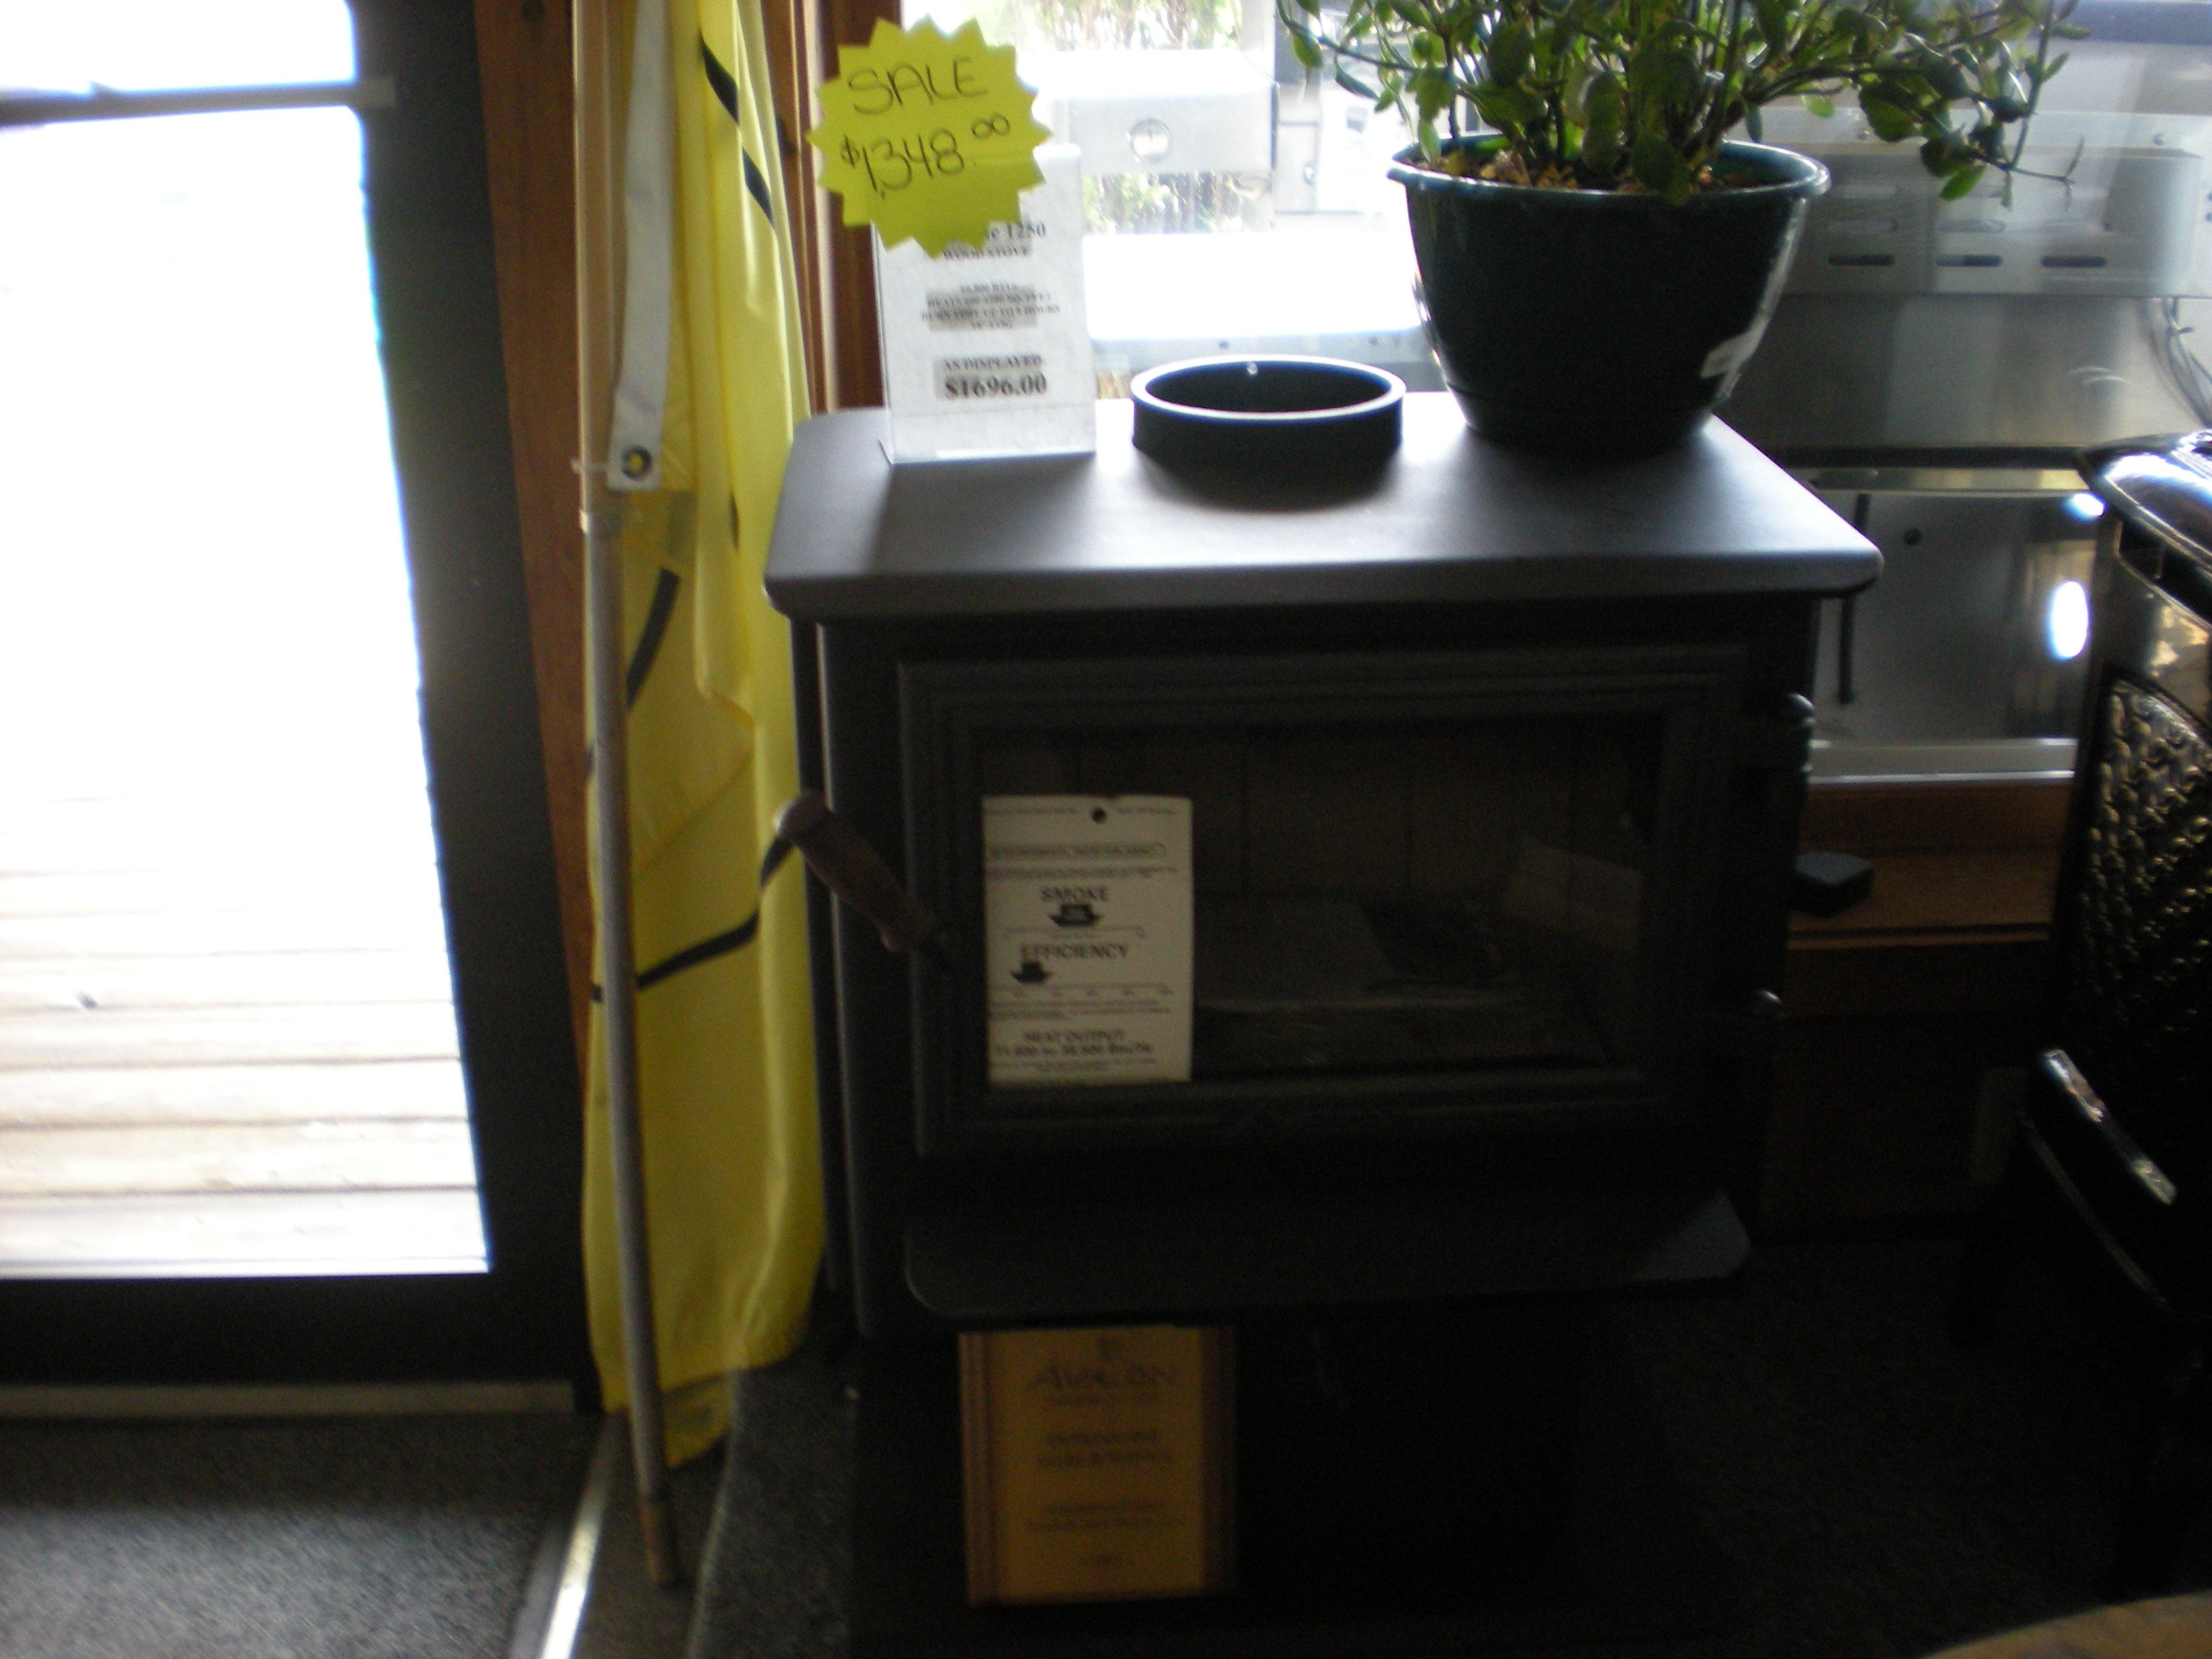 Avalon Spokane 1250 Wood Stove On Pedestal. Normally.....$1650.00  Now.....$1300 New Out Of Box.